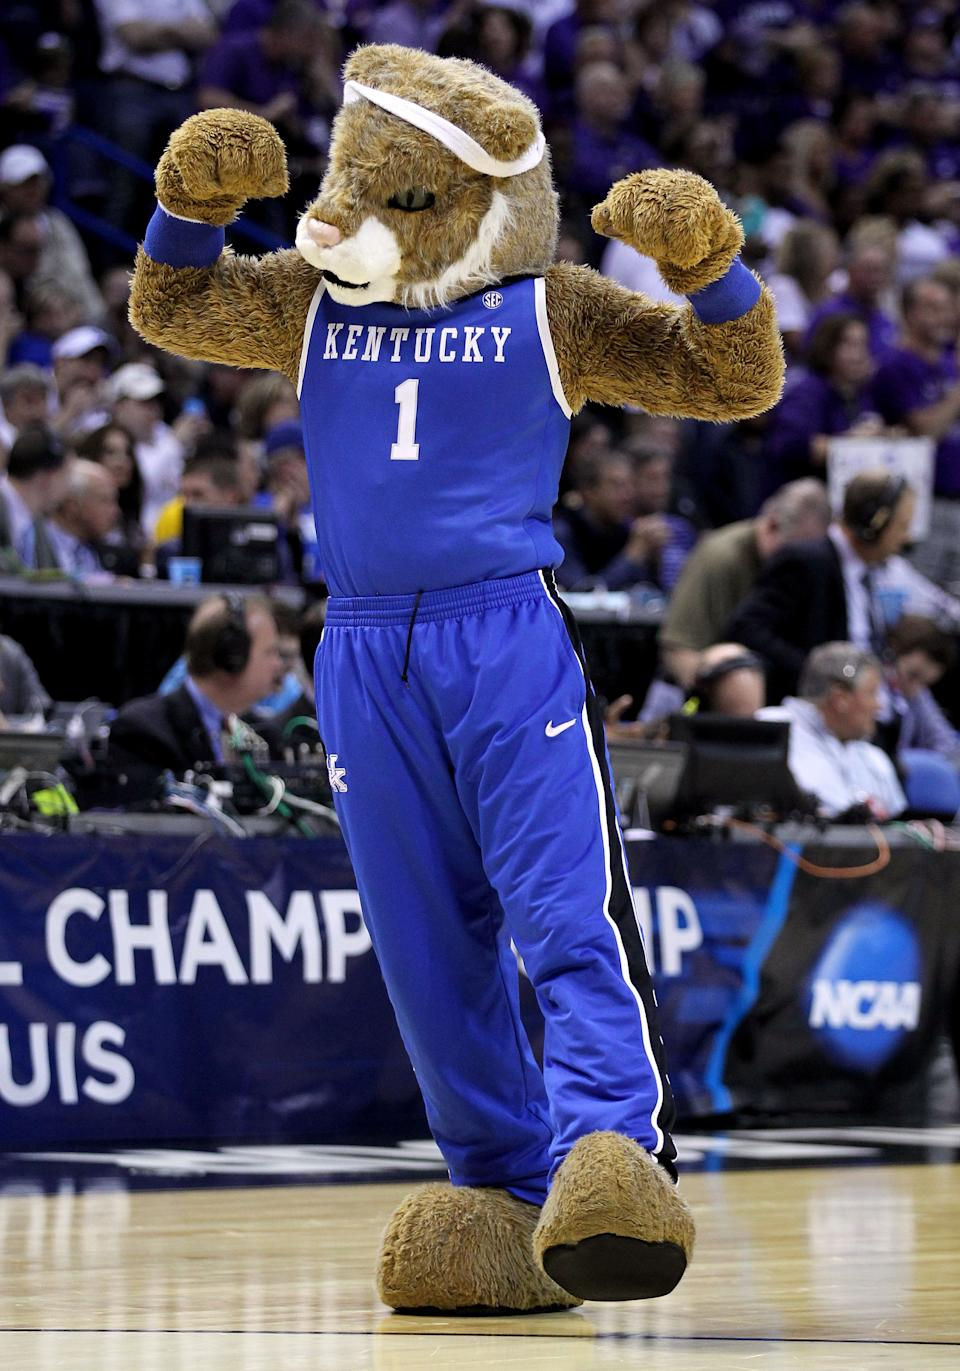 ST LOUIS, MO - MARCH 21: The Kentucky Wildcats mascot performs during the second round of the 2014 NCAA Men's Basketball Tournament against the Kansas State Wildcats at the Scottrade Center on March 21, 2014 in St Louis, Missouri.  (Photo by Andy Lyons/Getty Images)